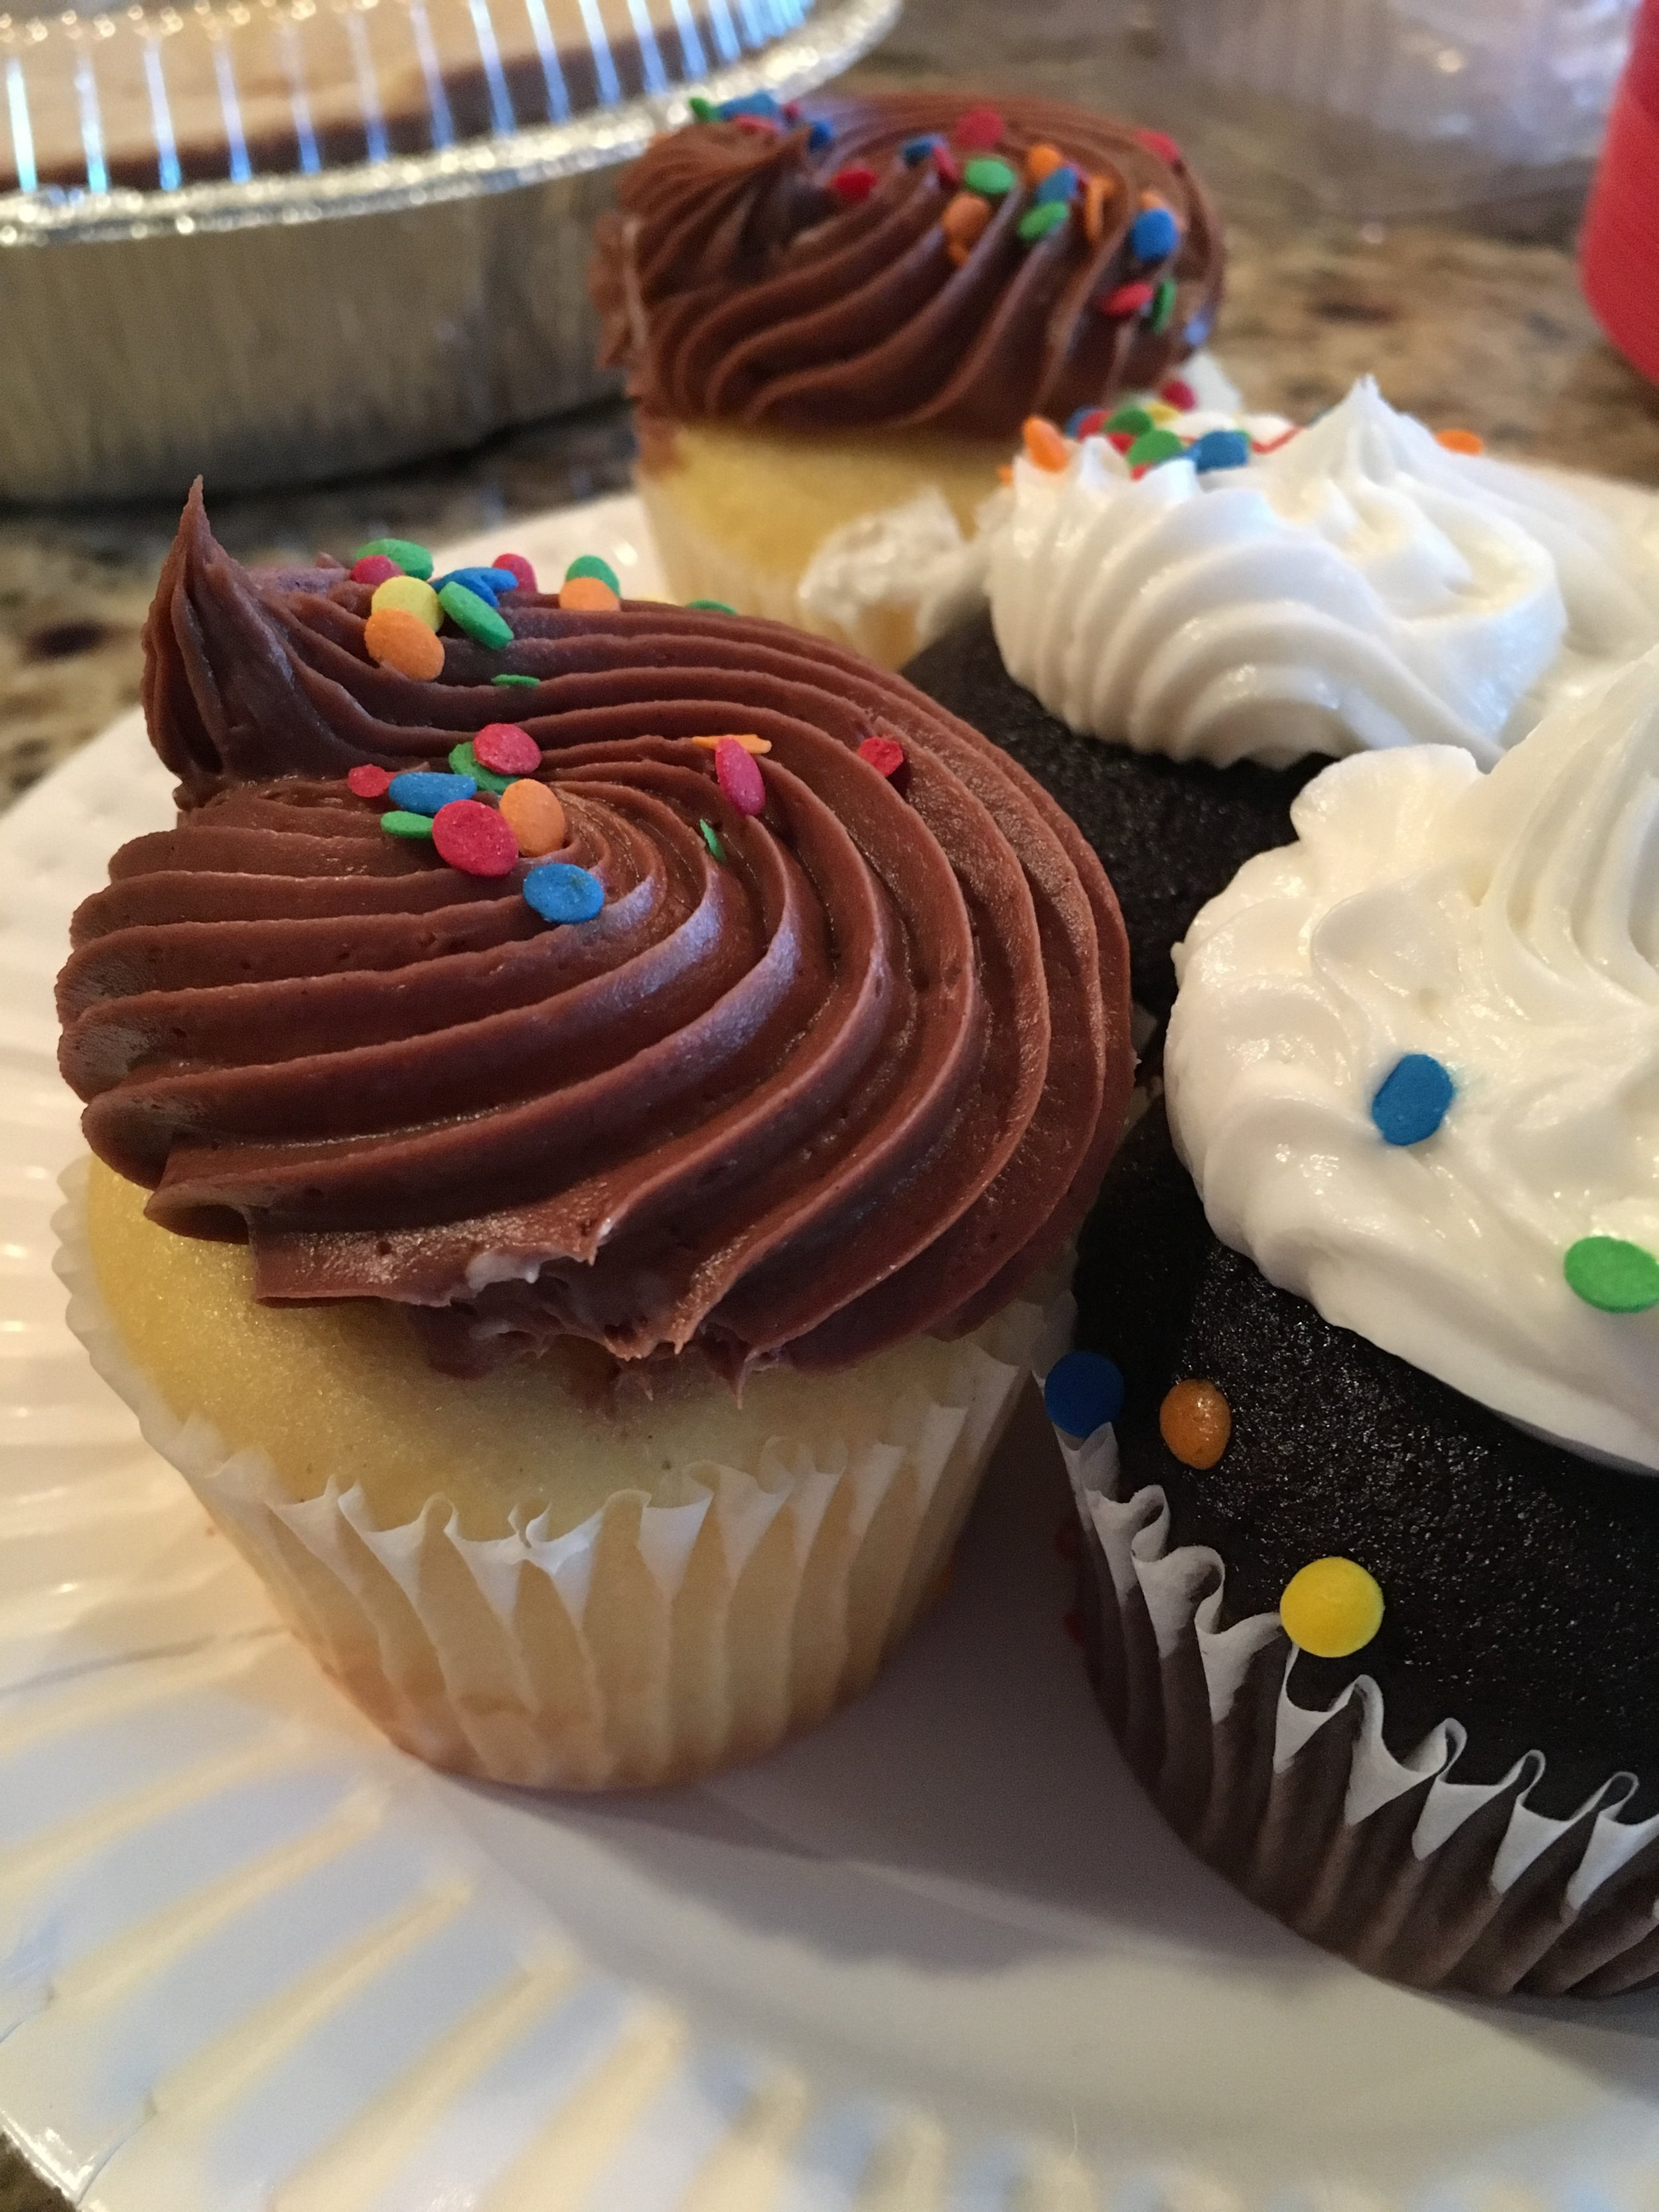 Put a plate of cupcakes in front of me and I will photograph it. (I didn't actually have one, but only because Funfetti cake was another option. 💯)